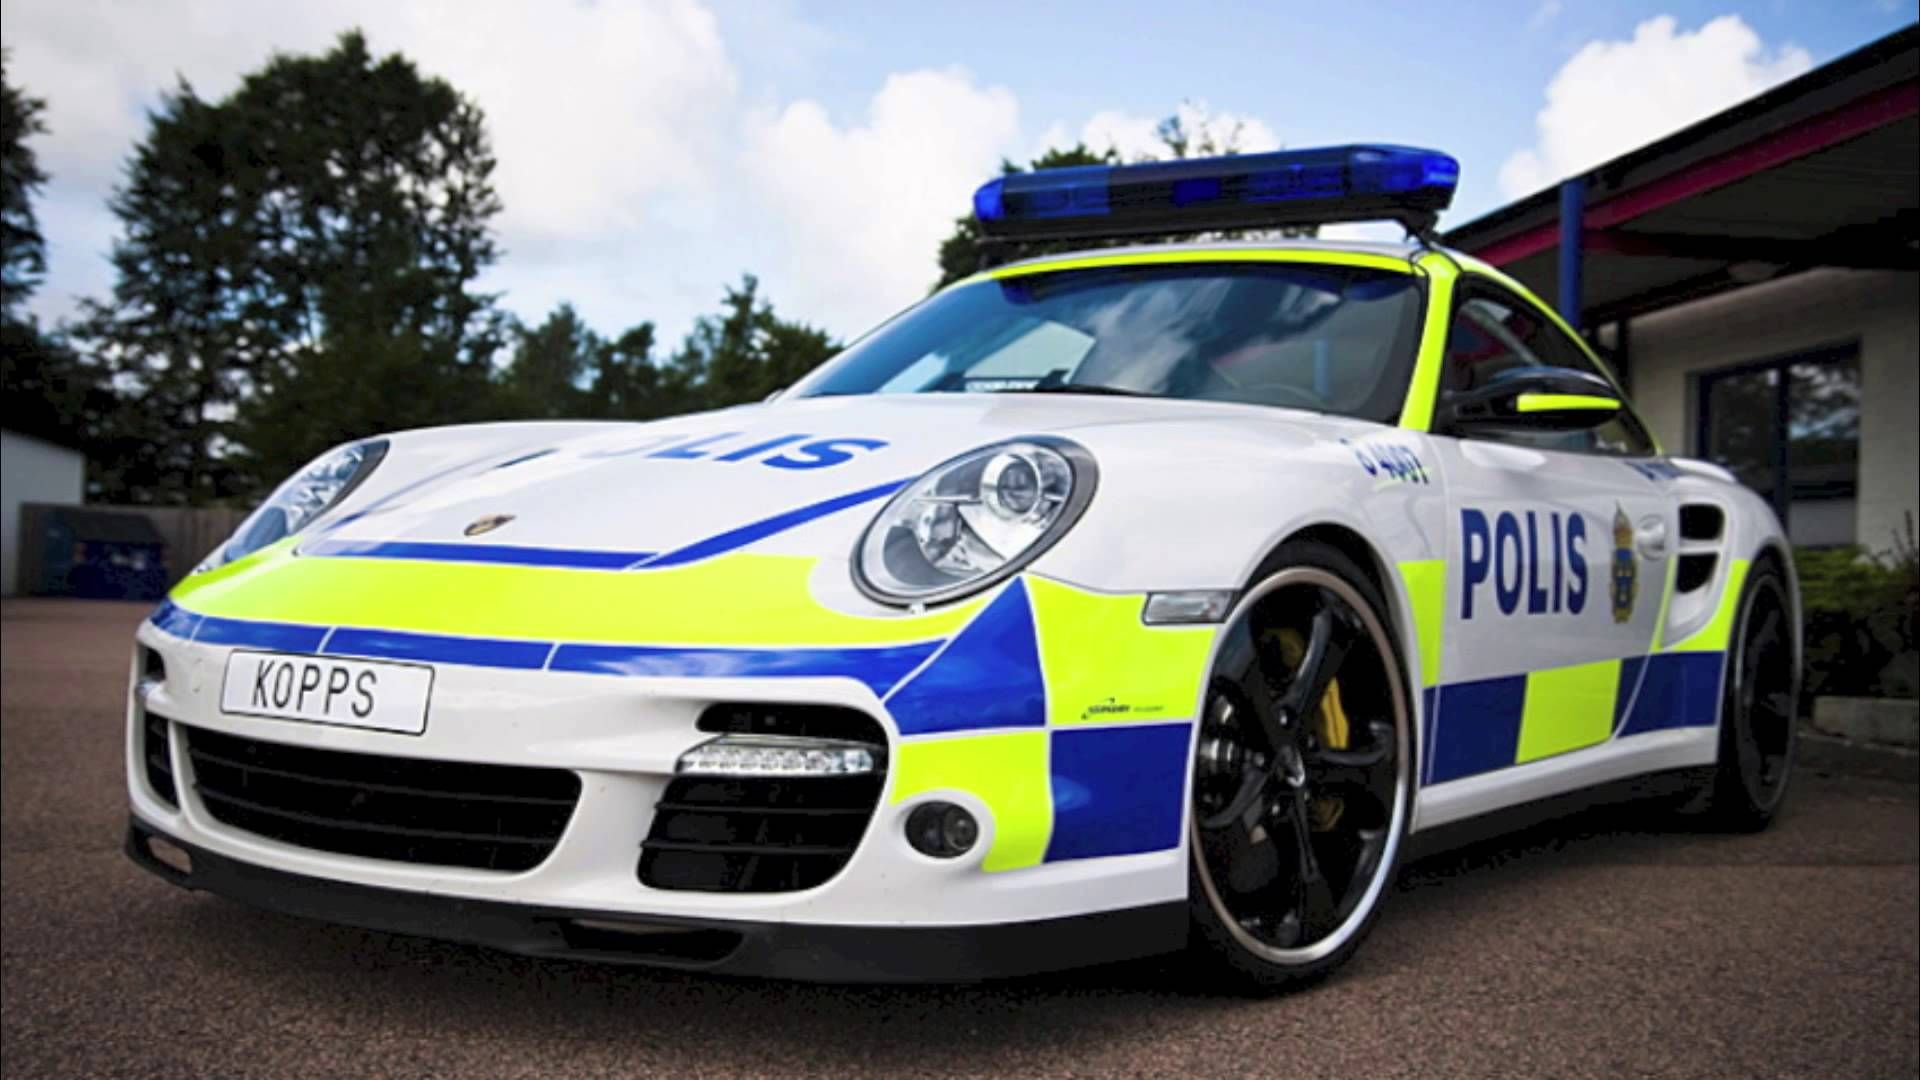 Germany Cars: Pin By Andy Foster On POLICE